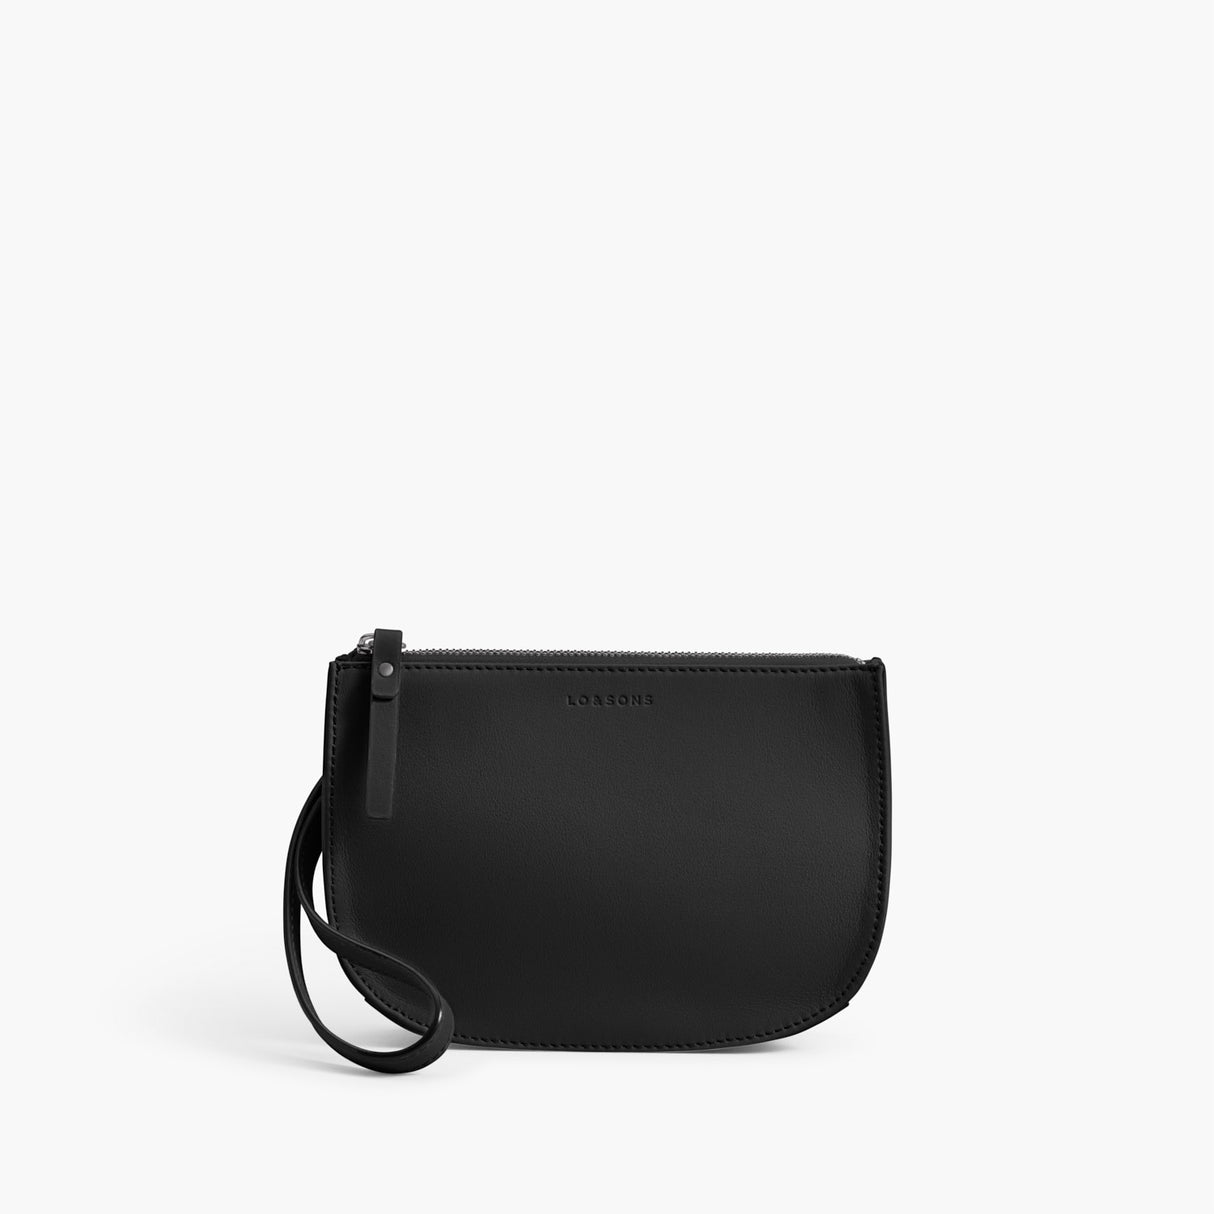 Front Wristlet - The Waverley 2 - Nappa Leather - Black / Gunmetal / Grey - Crossbody - Lo & Sons